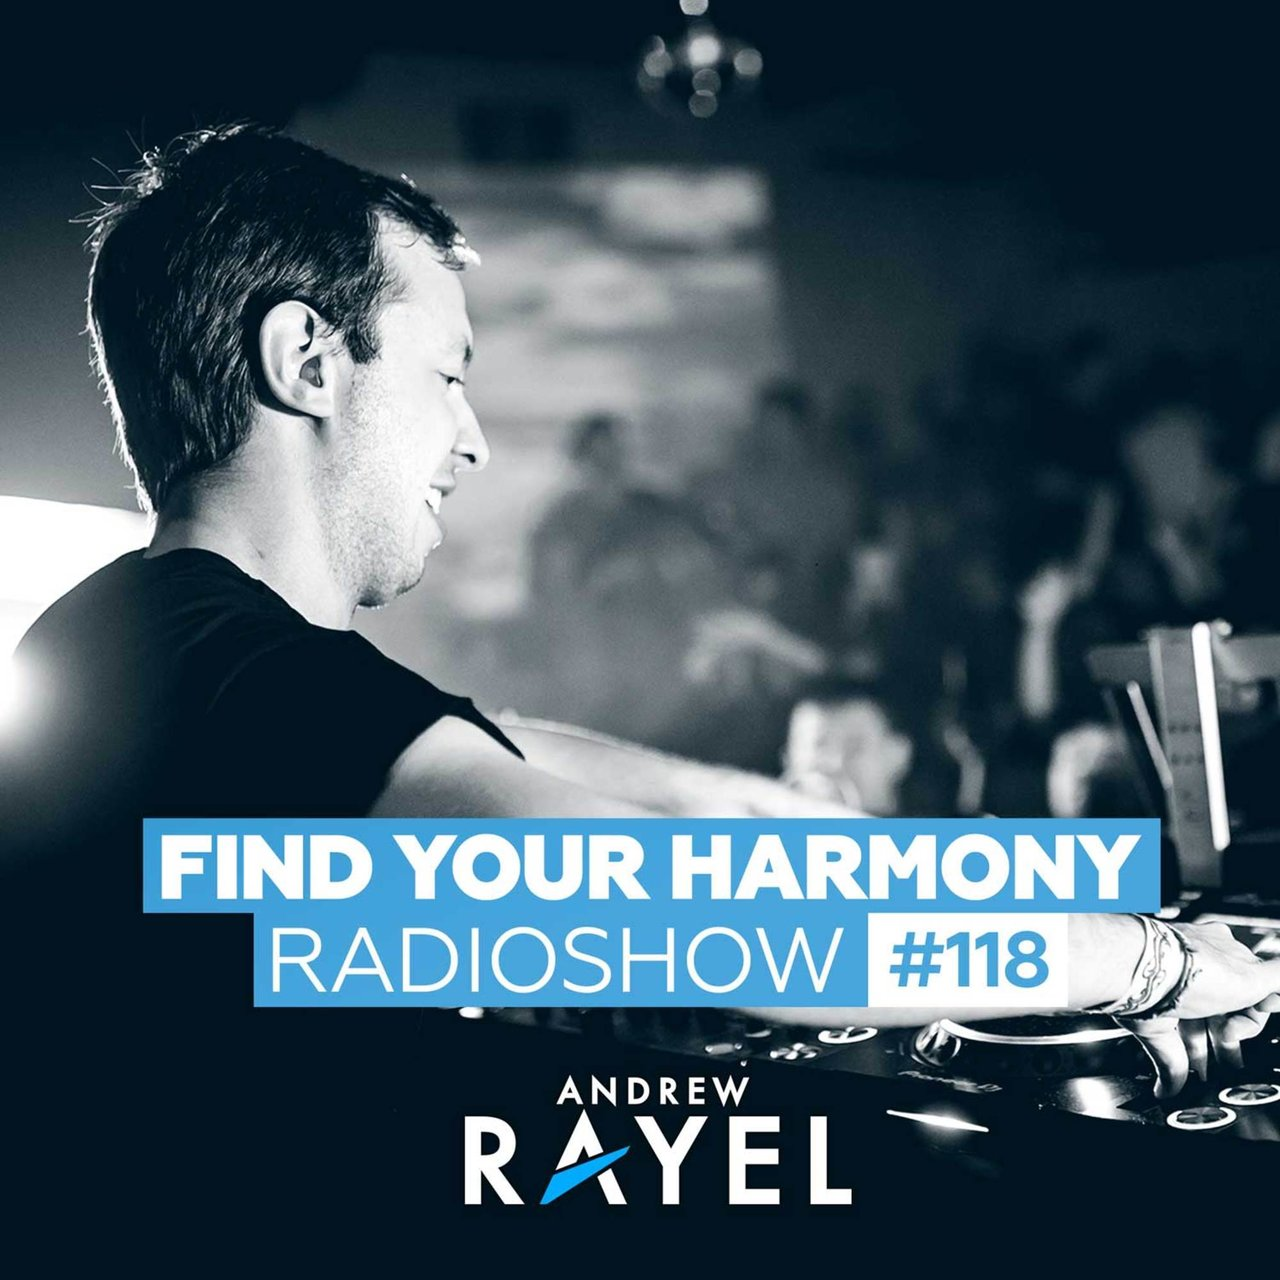 Find Your Harmony Radioshow #118